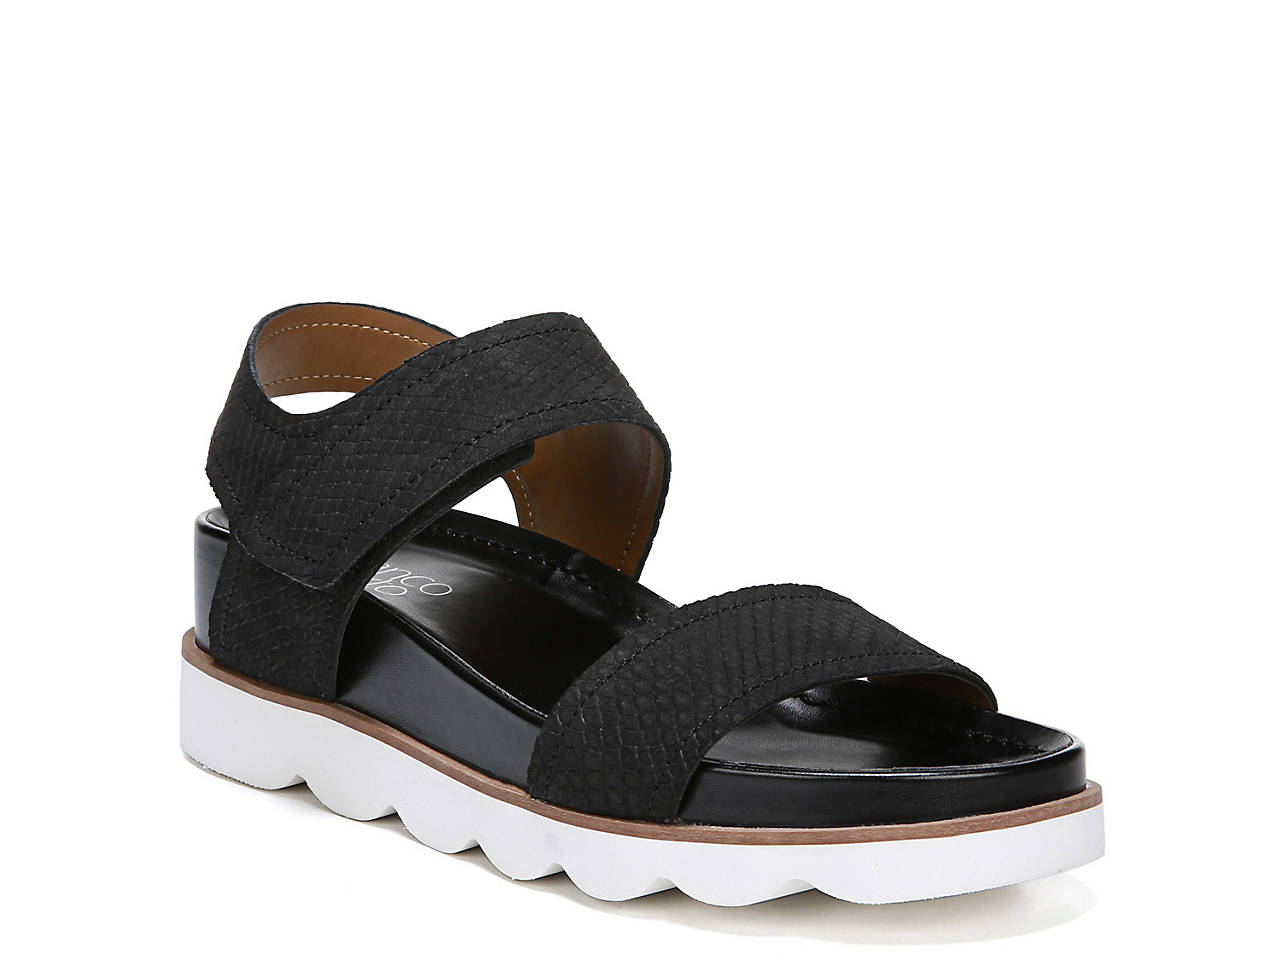 ebbae1dafdb India Wedge Sandal